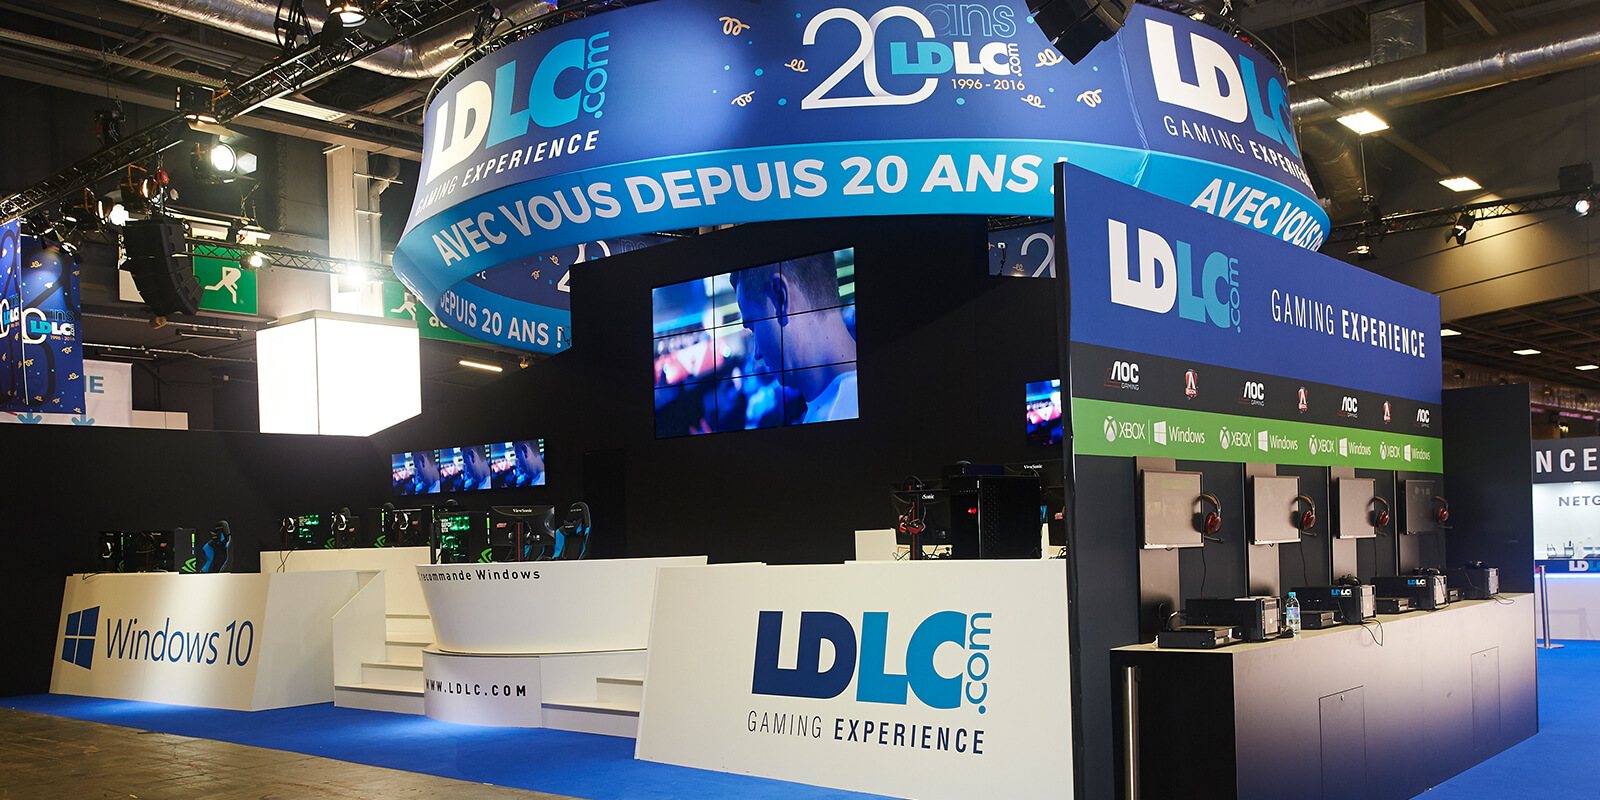 expace-stand-showroom-event-solutions-mobiles-banners-projets_0000_stand – 370m2 – LDLC – GamesWeek – Paris – octobre 20